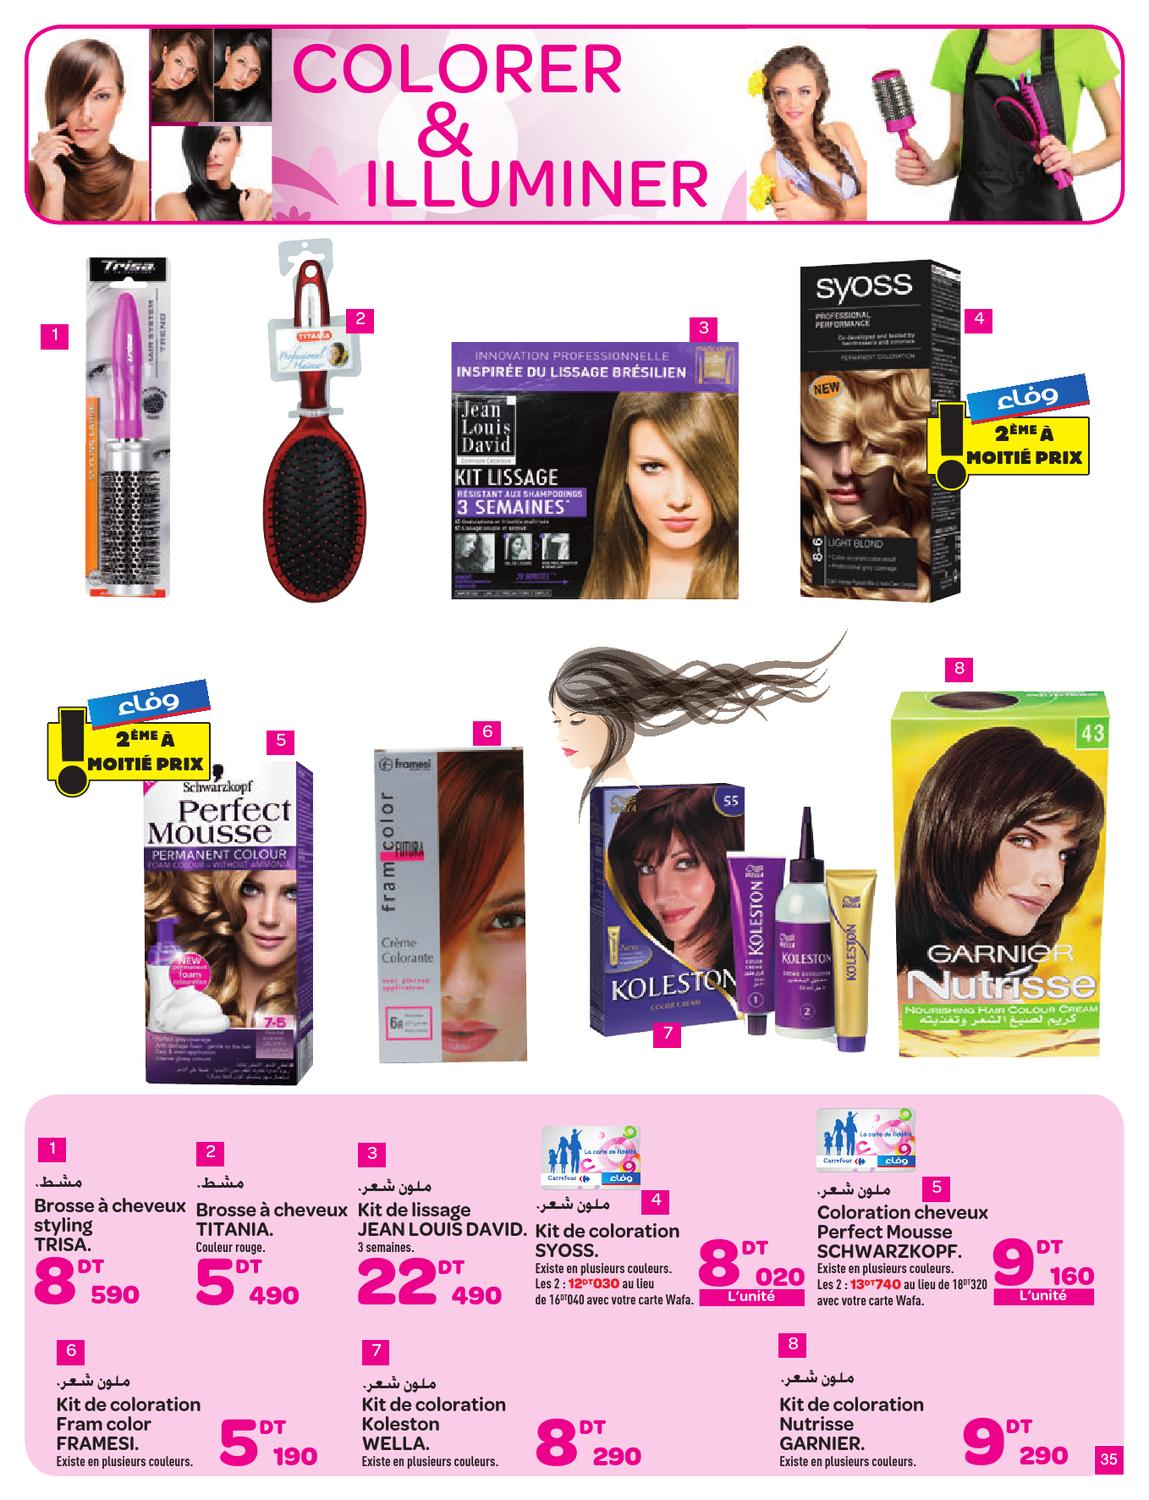 catalogue carrefour t 2013 by carrefour tunisie page 35 issuu - Syoss Coloration Prix